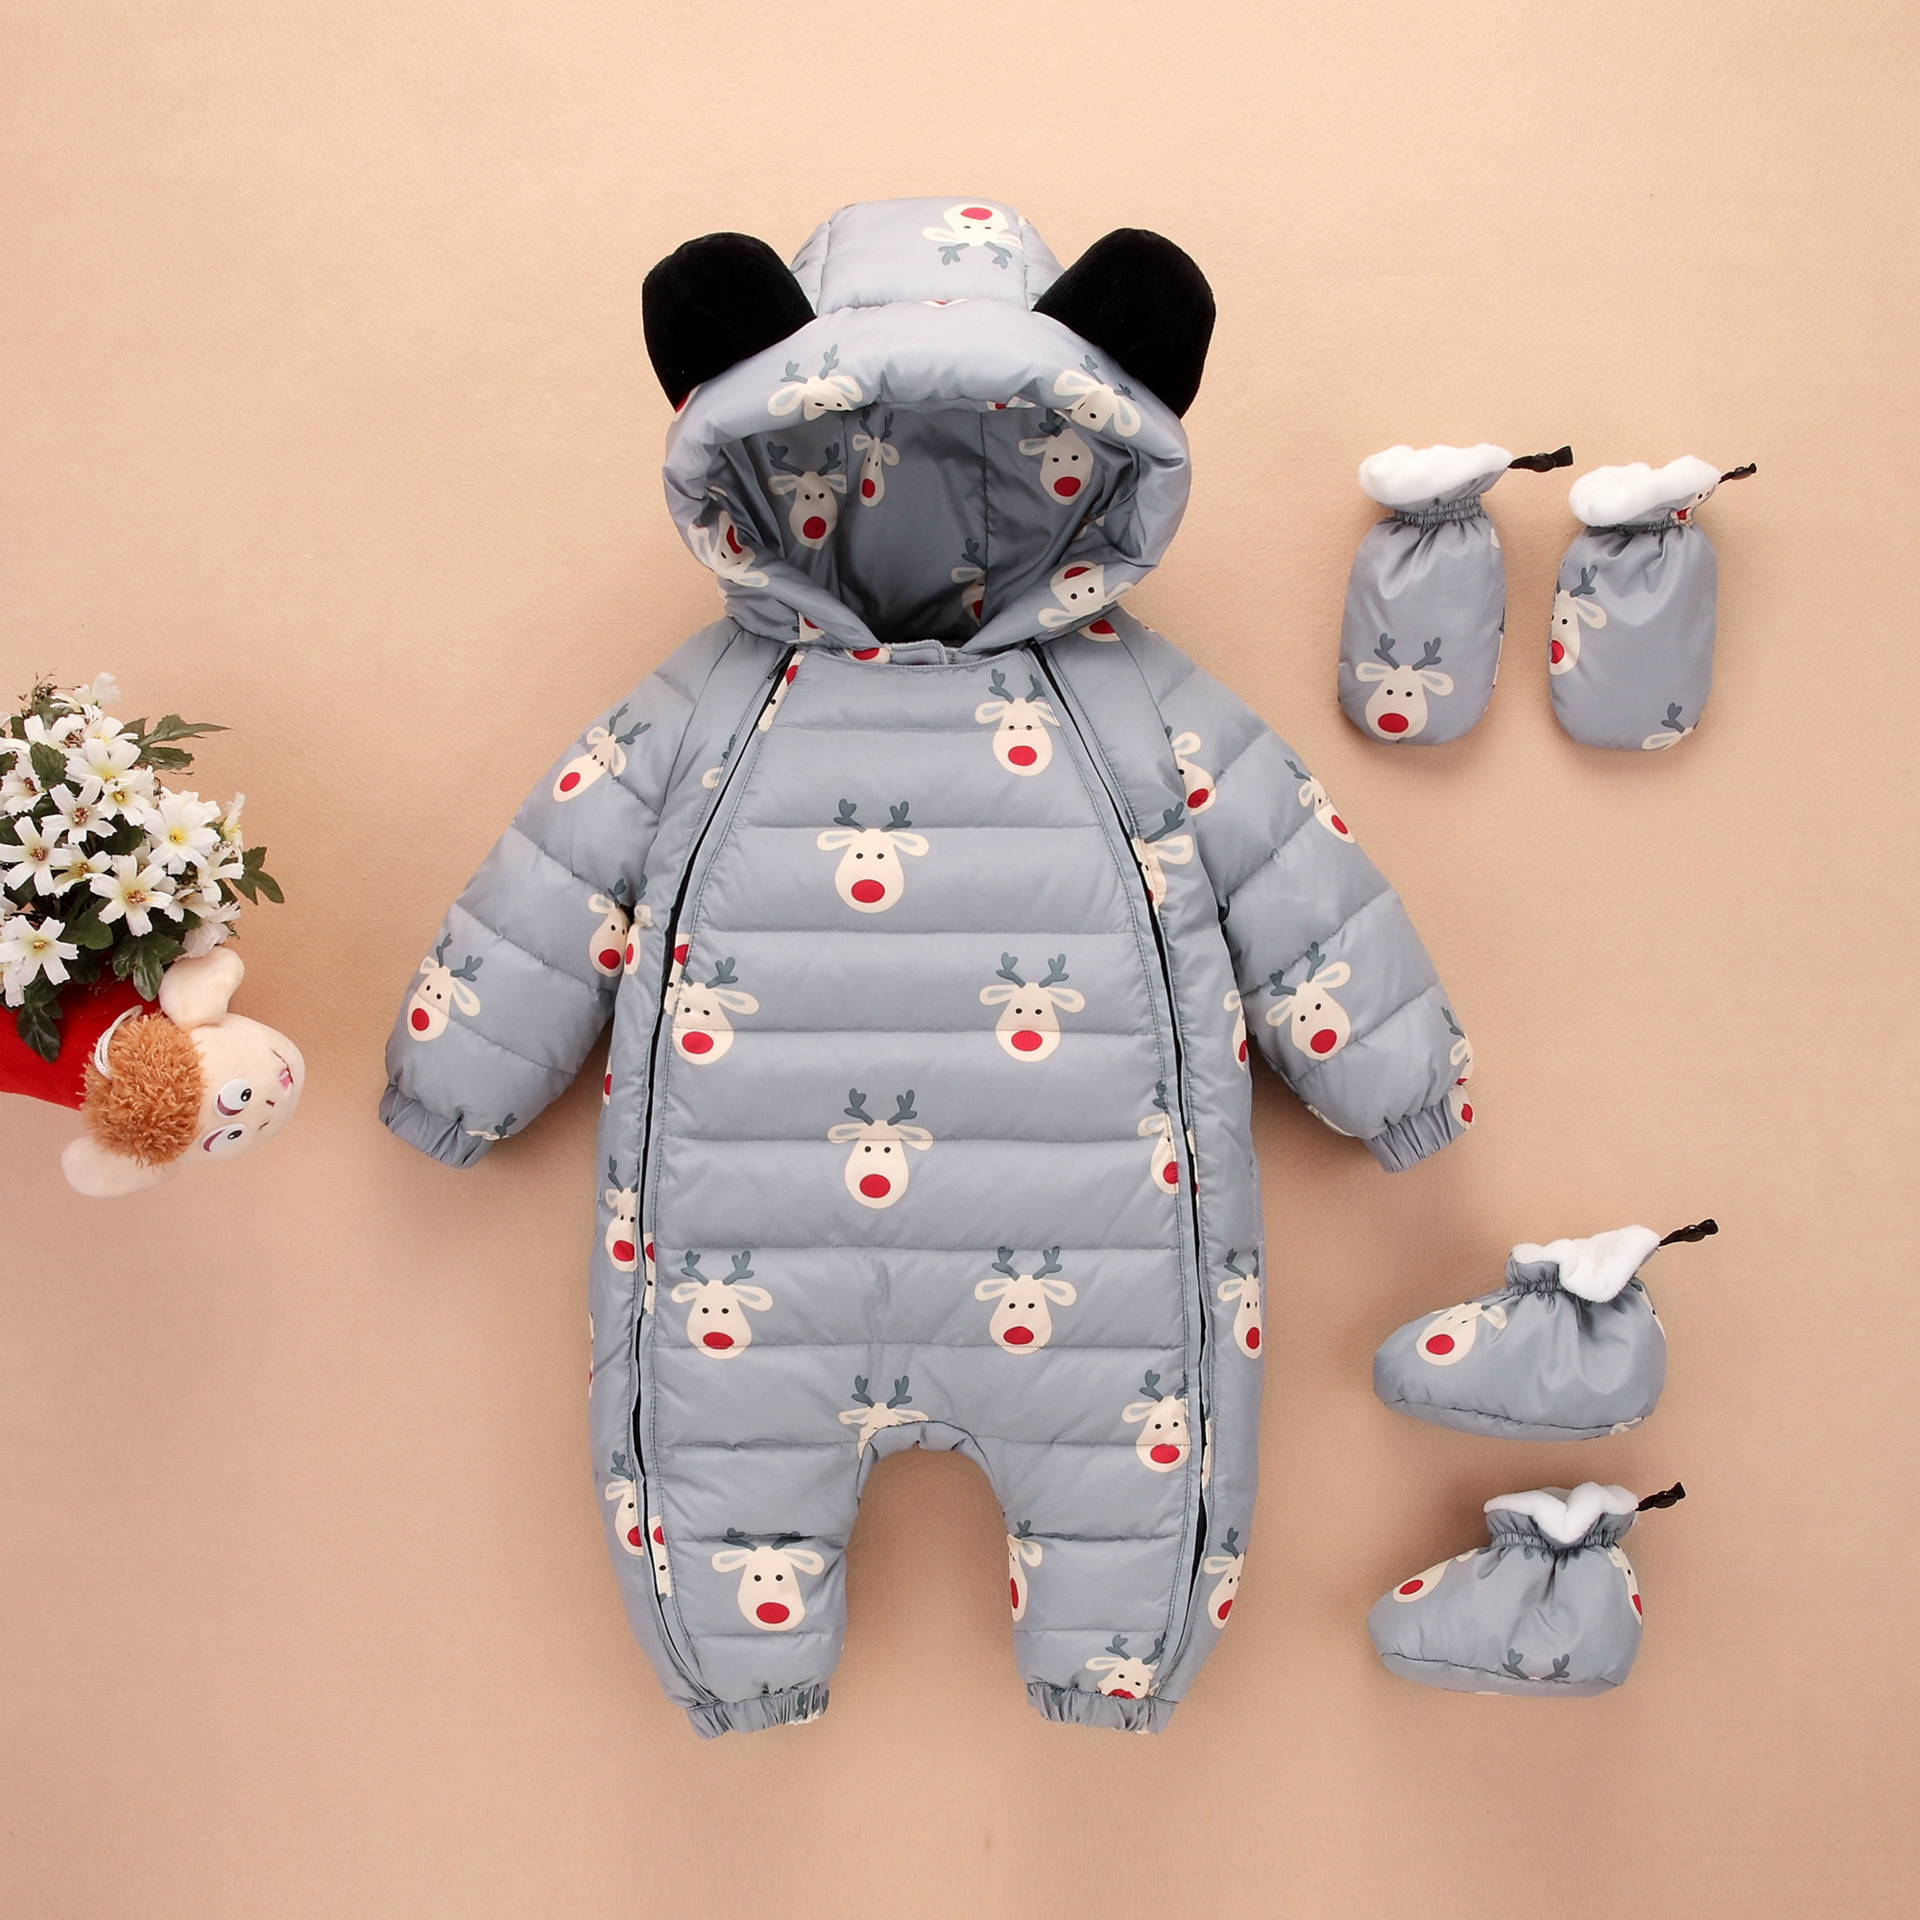 2017 For RU Winter White Duck Down Baby Rompers Baby Snowsuit Infant Boy Girl Cartoon One-piece Outfit Children's Down Clothing